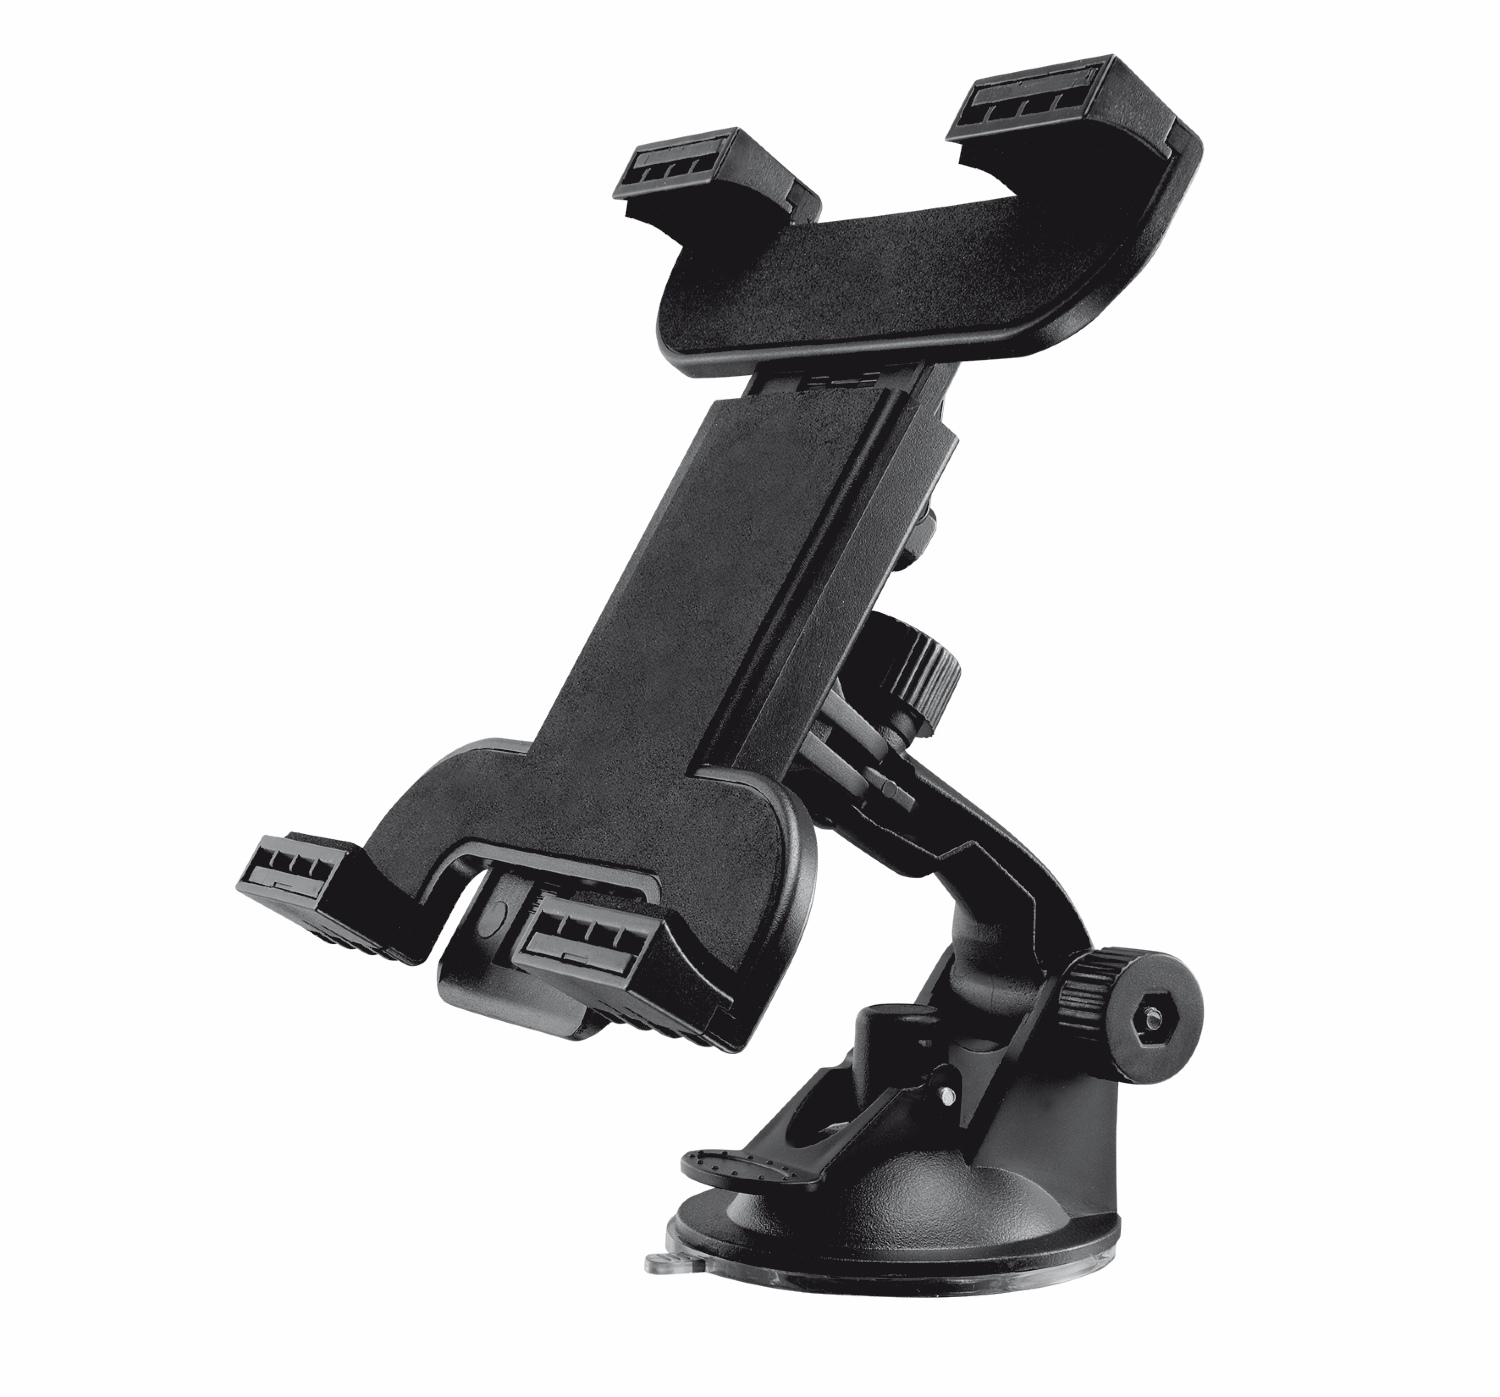 TRUST Car Tablet Holder for 7-11' tablets